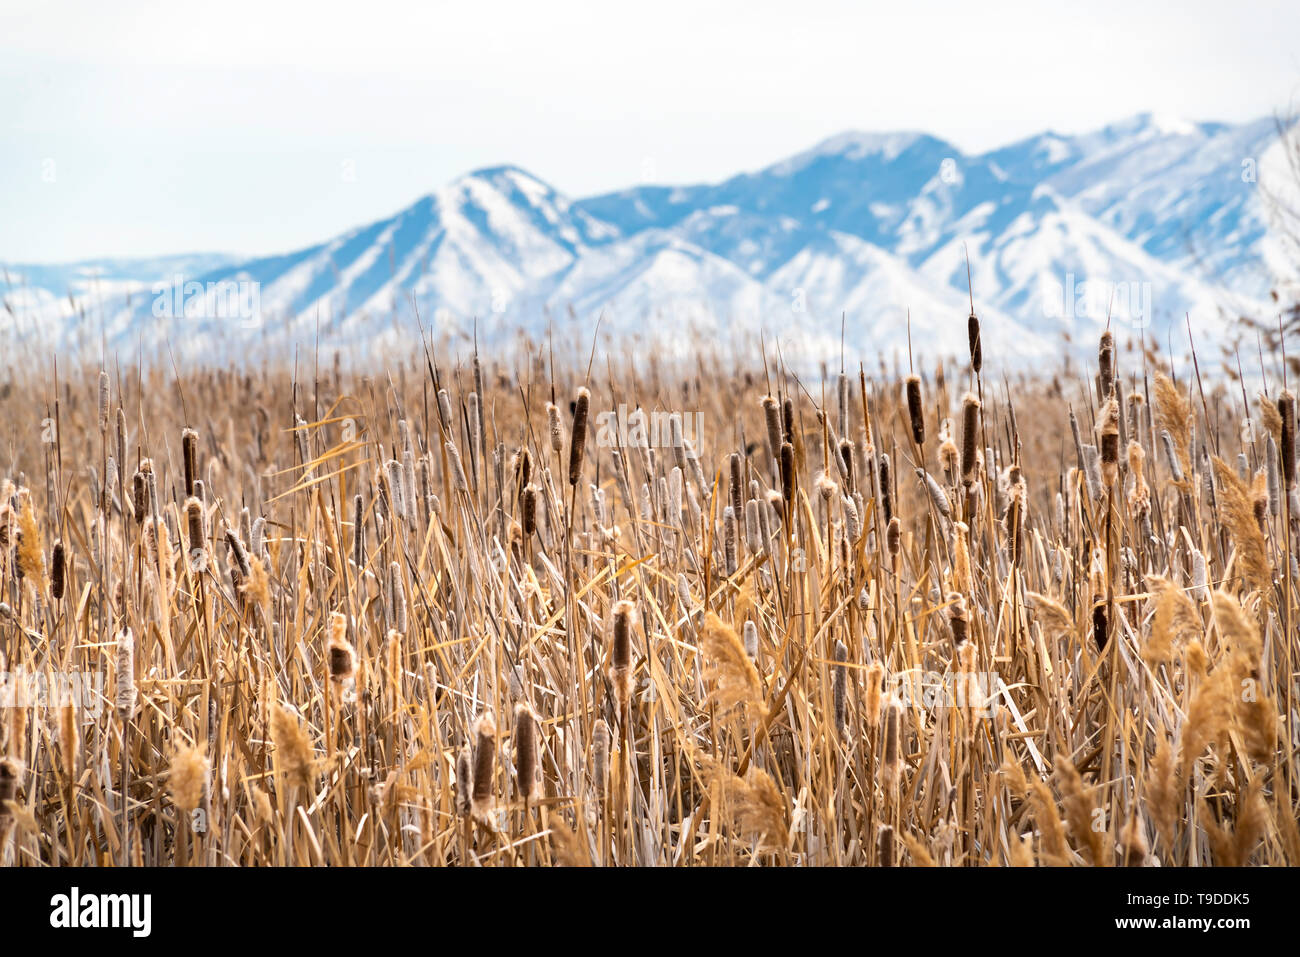 Tall brown grasses on a vast terrain viewed on a sunny winter day. An amazing snow covered mountain against bright sky can be seen in the background. - Stock Image